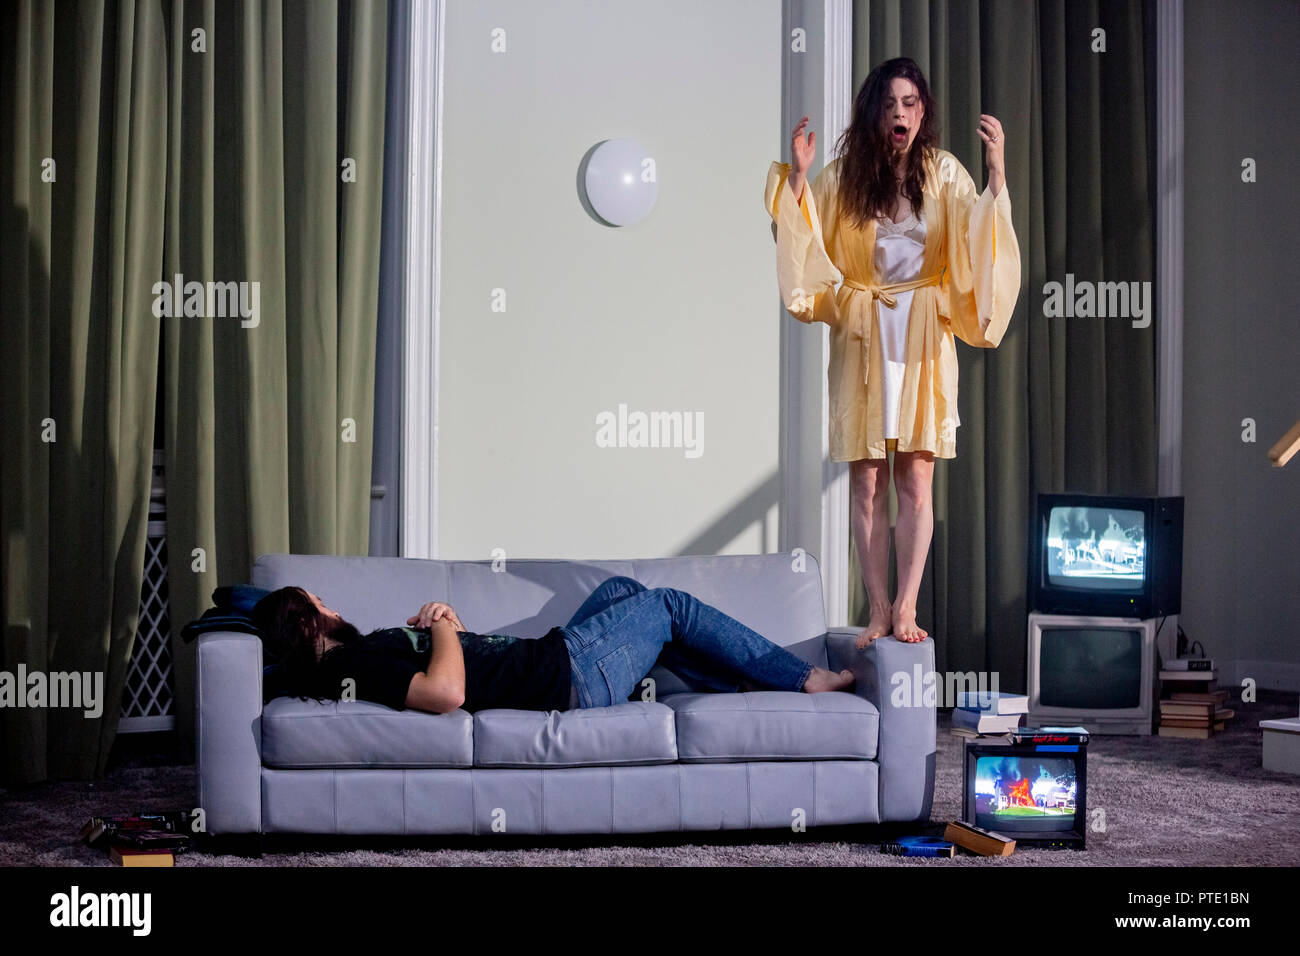 09 October 2018, Berlin: David O·trek in the role of Roderick Usher (l) and Ruth Rosenfeld in the role of Lady Madeline appear in the photo rehearsal for the premiere of 'Usher' by Claude Debussy and Annelies Van Parys in the production of Philippe Quesne at the Staatsoper Unter den Linden. Photo: Christoph Soeder/dpa - Stock Image